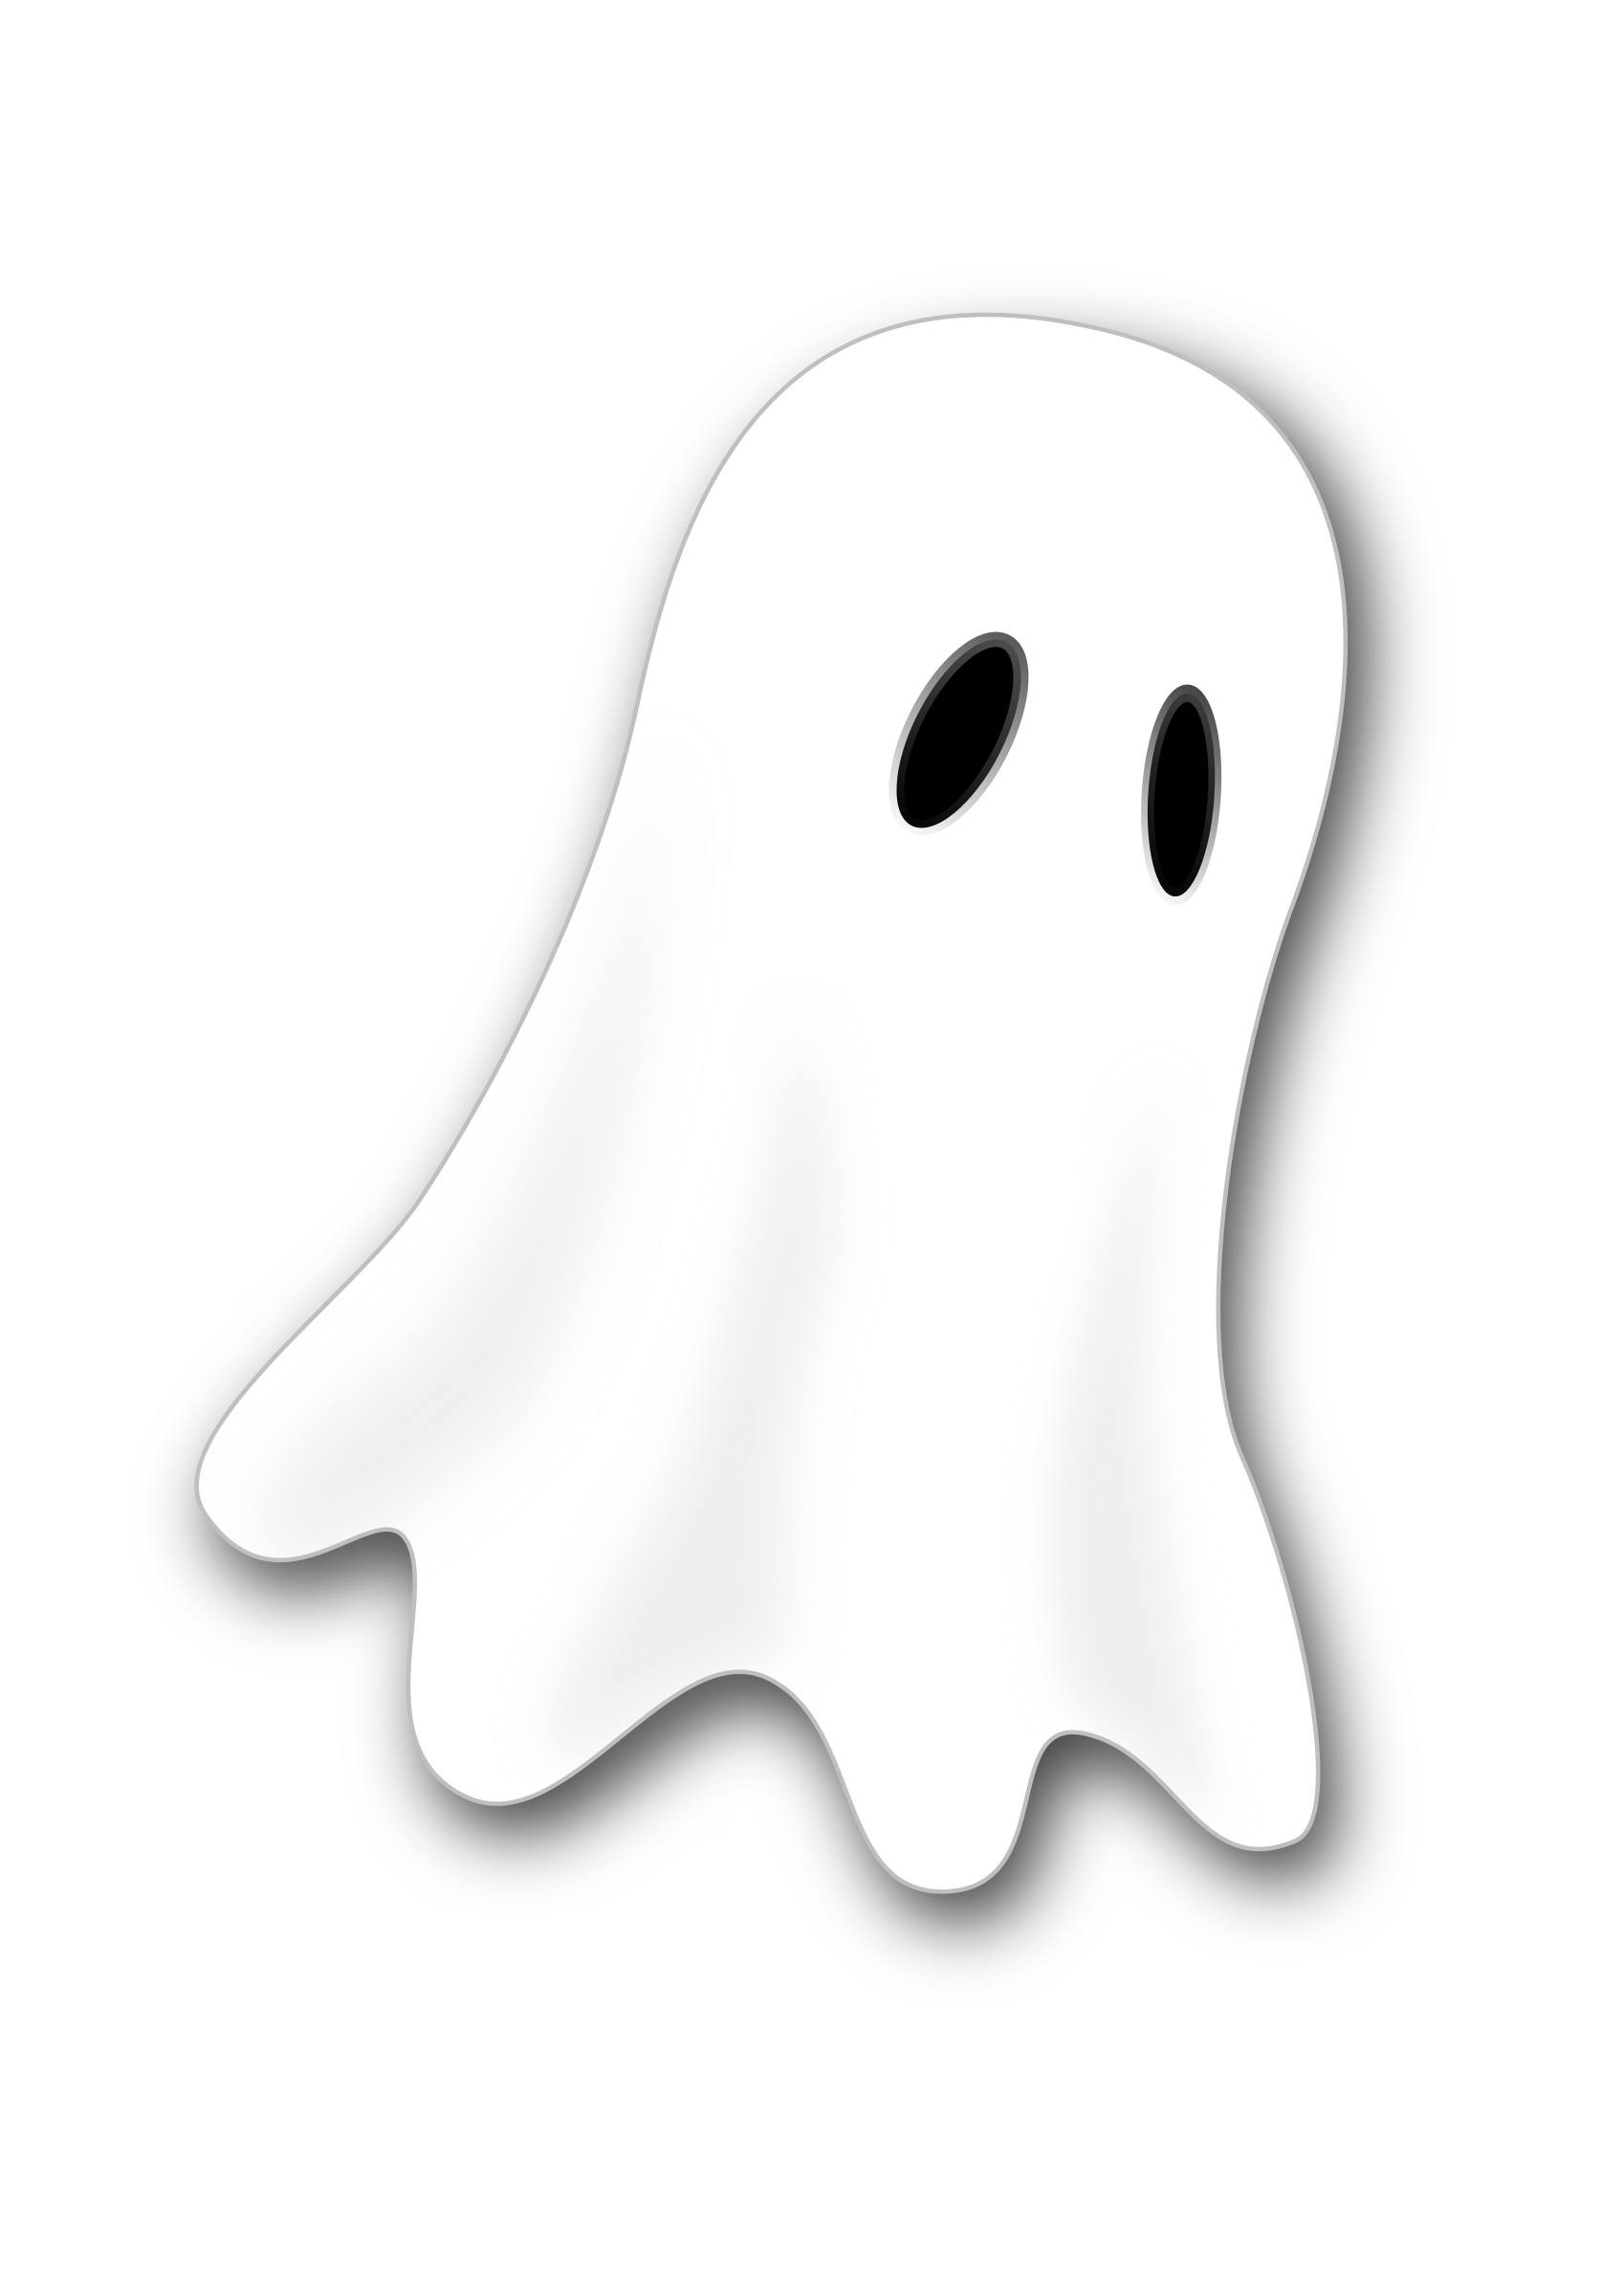 Ghost image png. Clipart writing big write